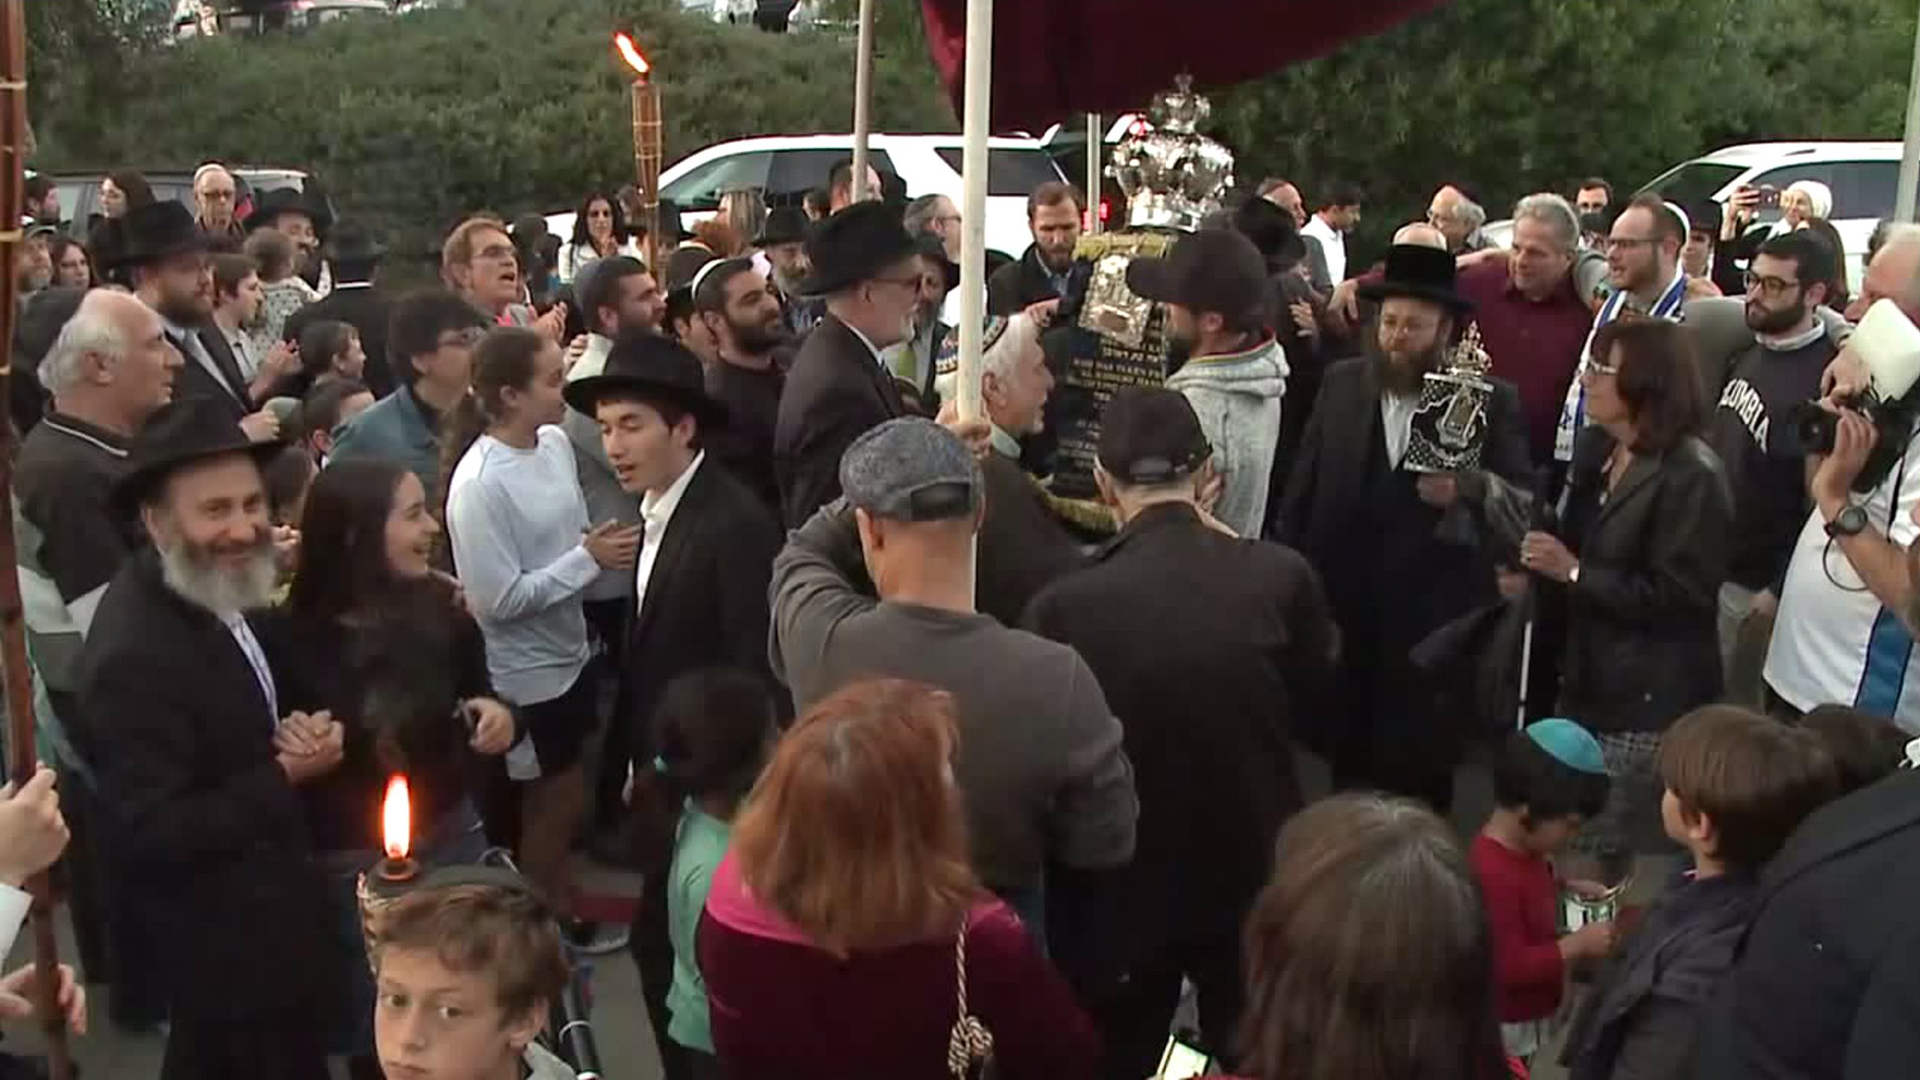 The Chabad of Poway community gathers at the synagogue on May 22, 2019, to honor Lori Kaye, who was killed in a shooting attack there the month before. (Credit: KSWB)